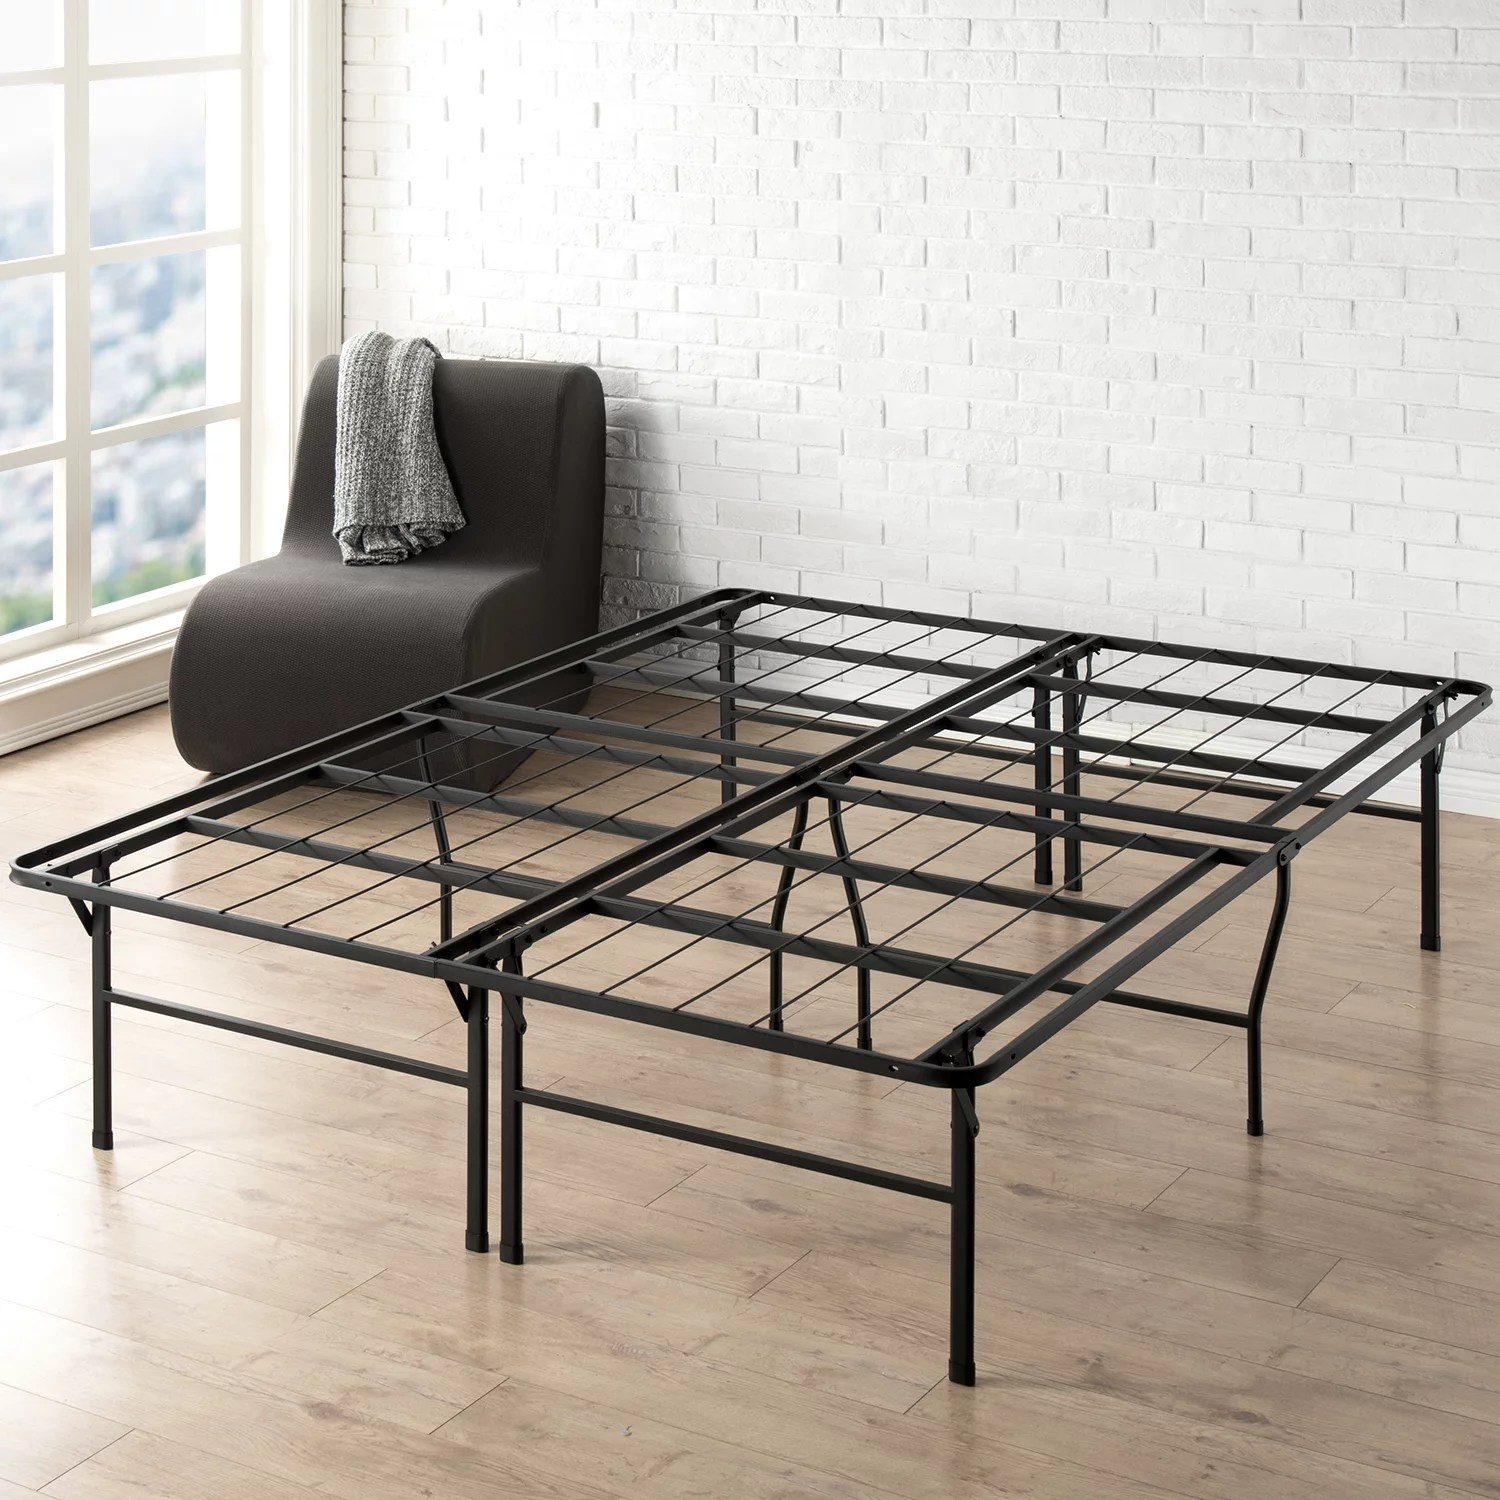 Best Price Mattress 18 Inch Metal Platform Bed Frame